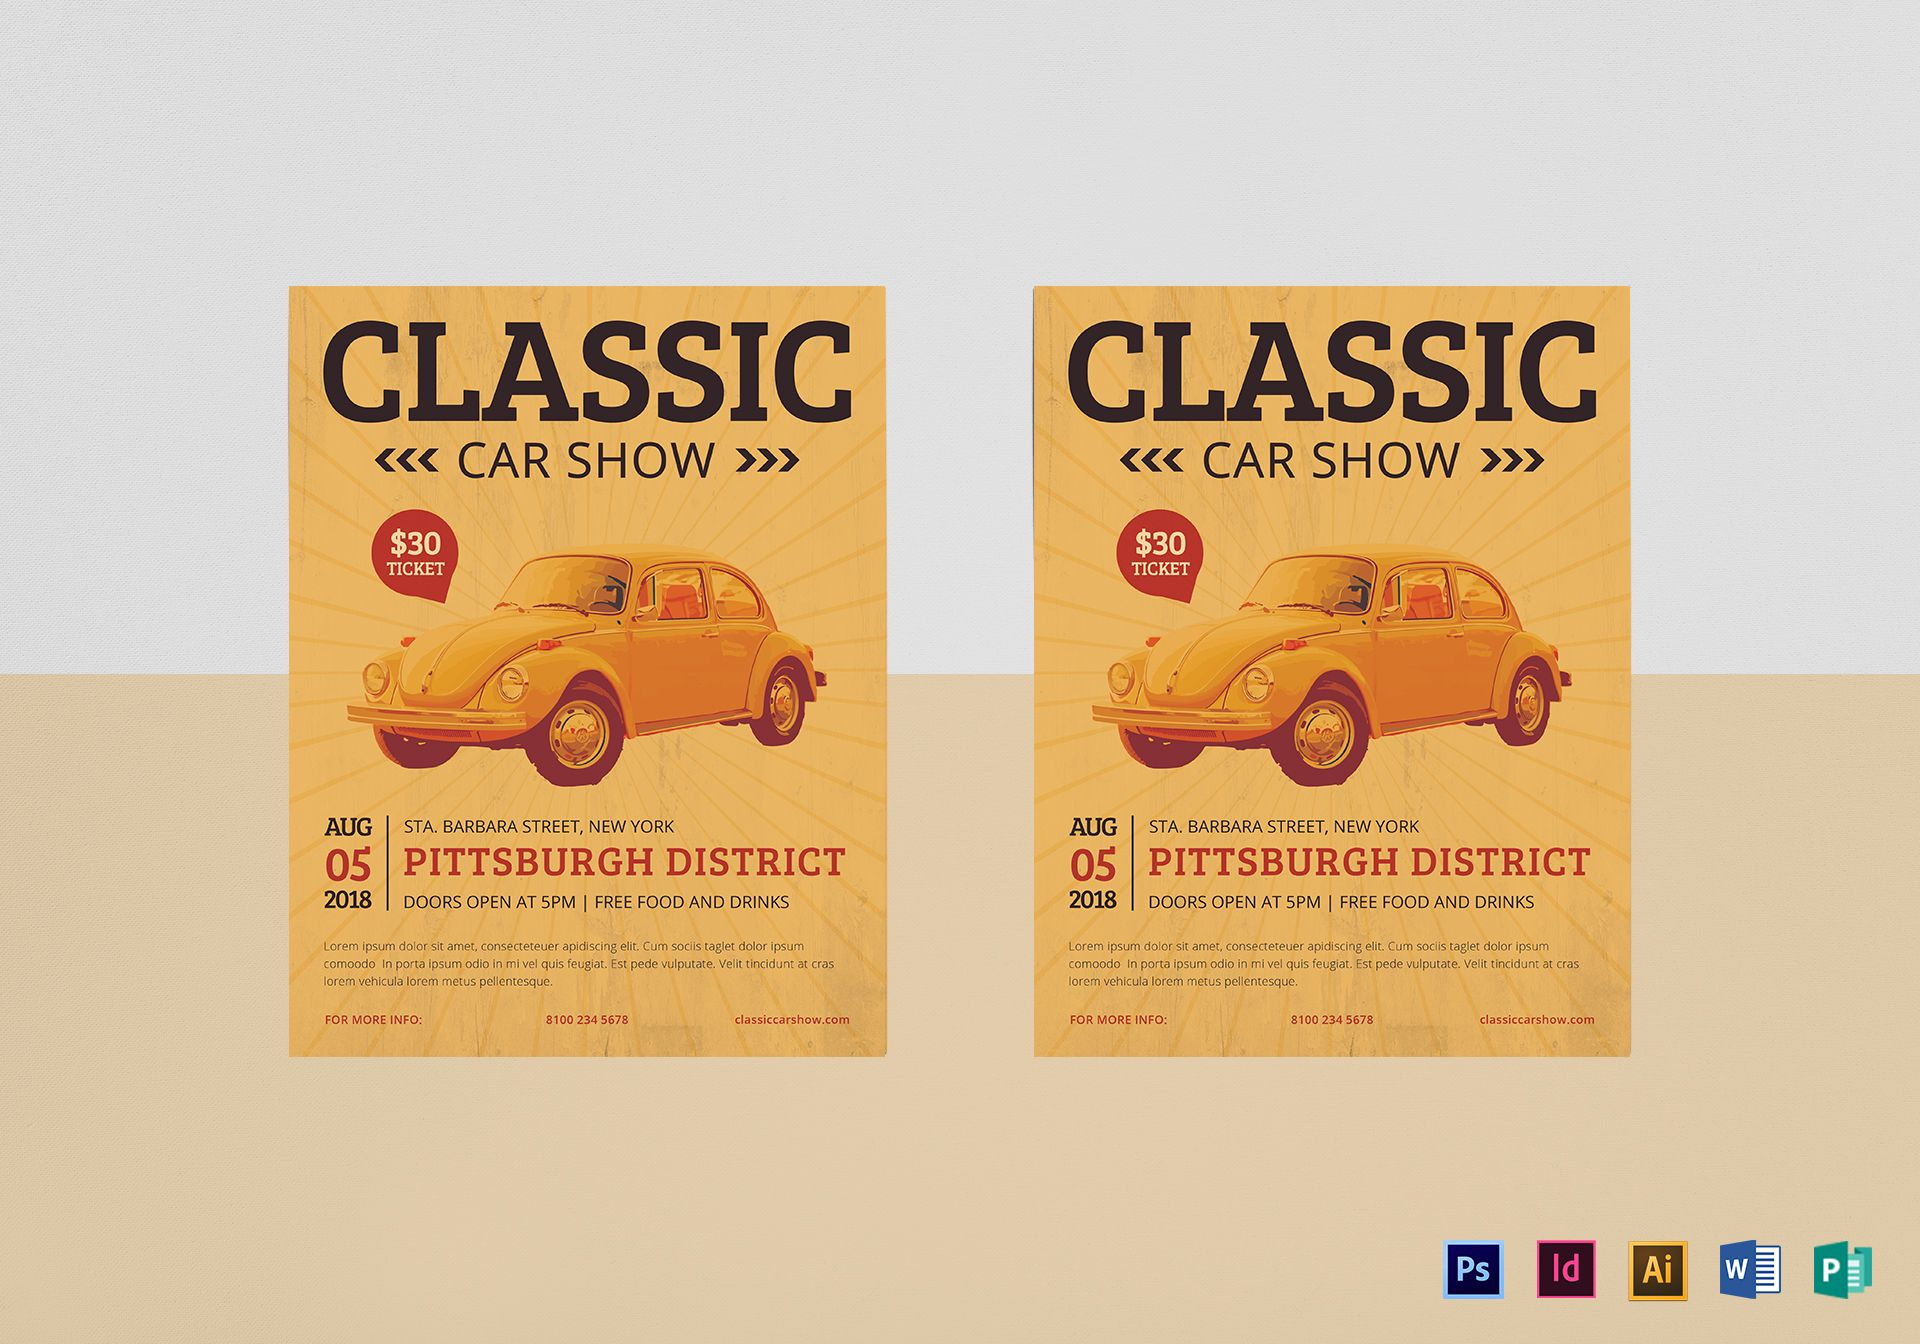 Classic Car Show Flyer Design Template In PSD Word Publisher - Car show flyer template word